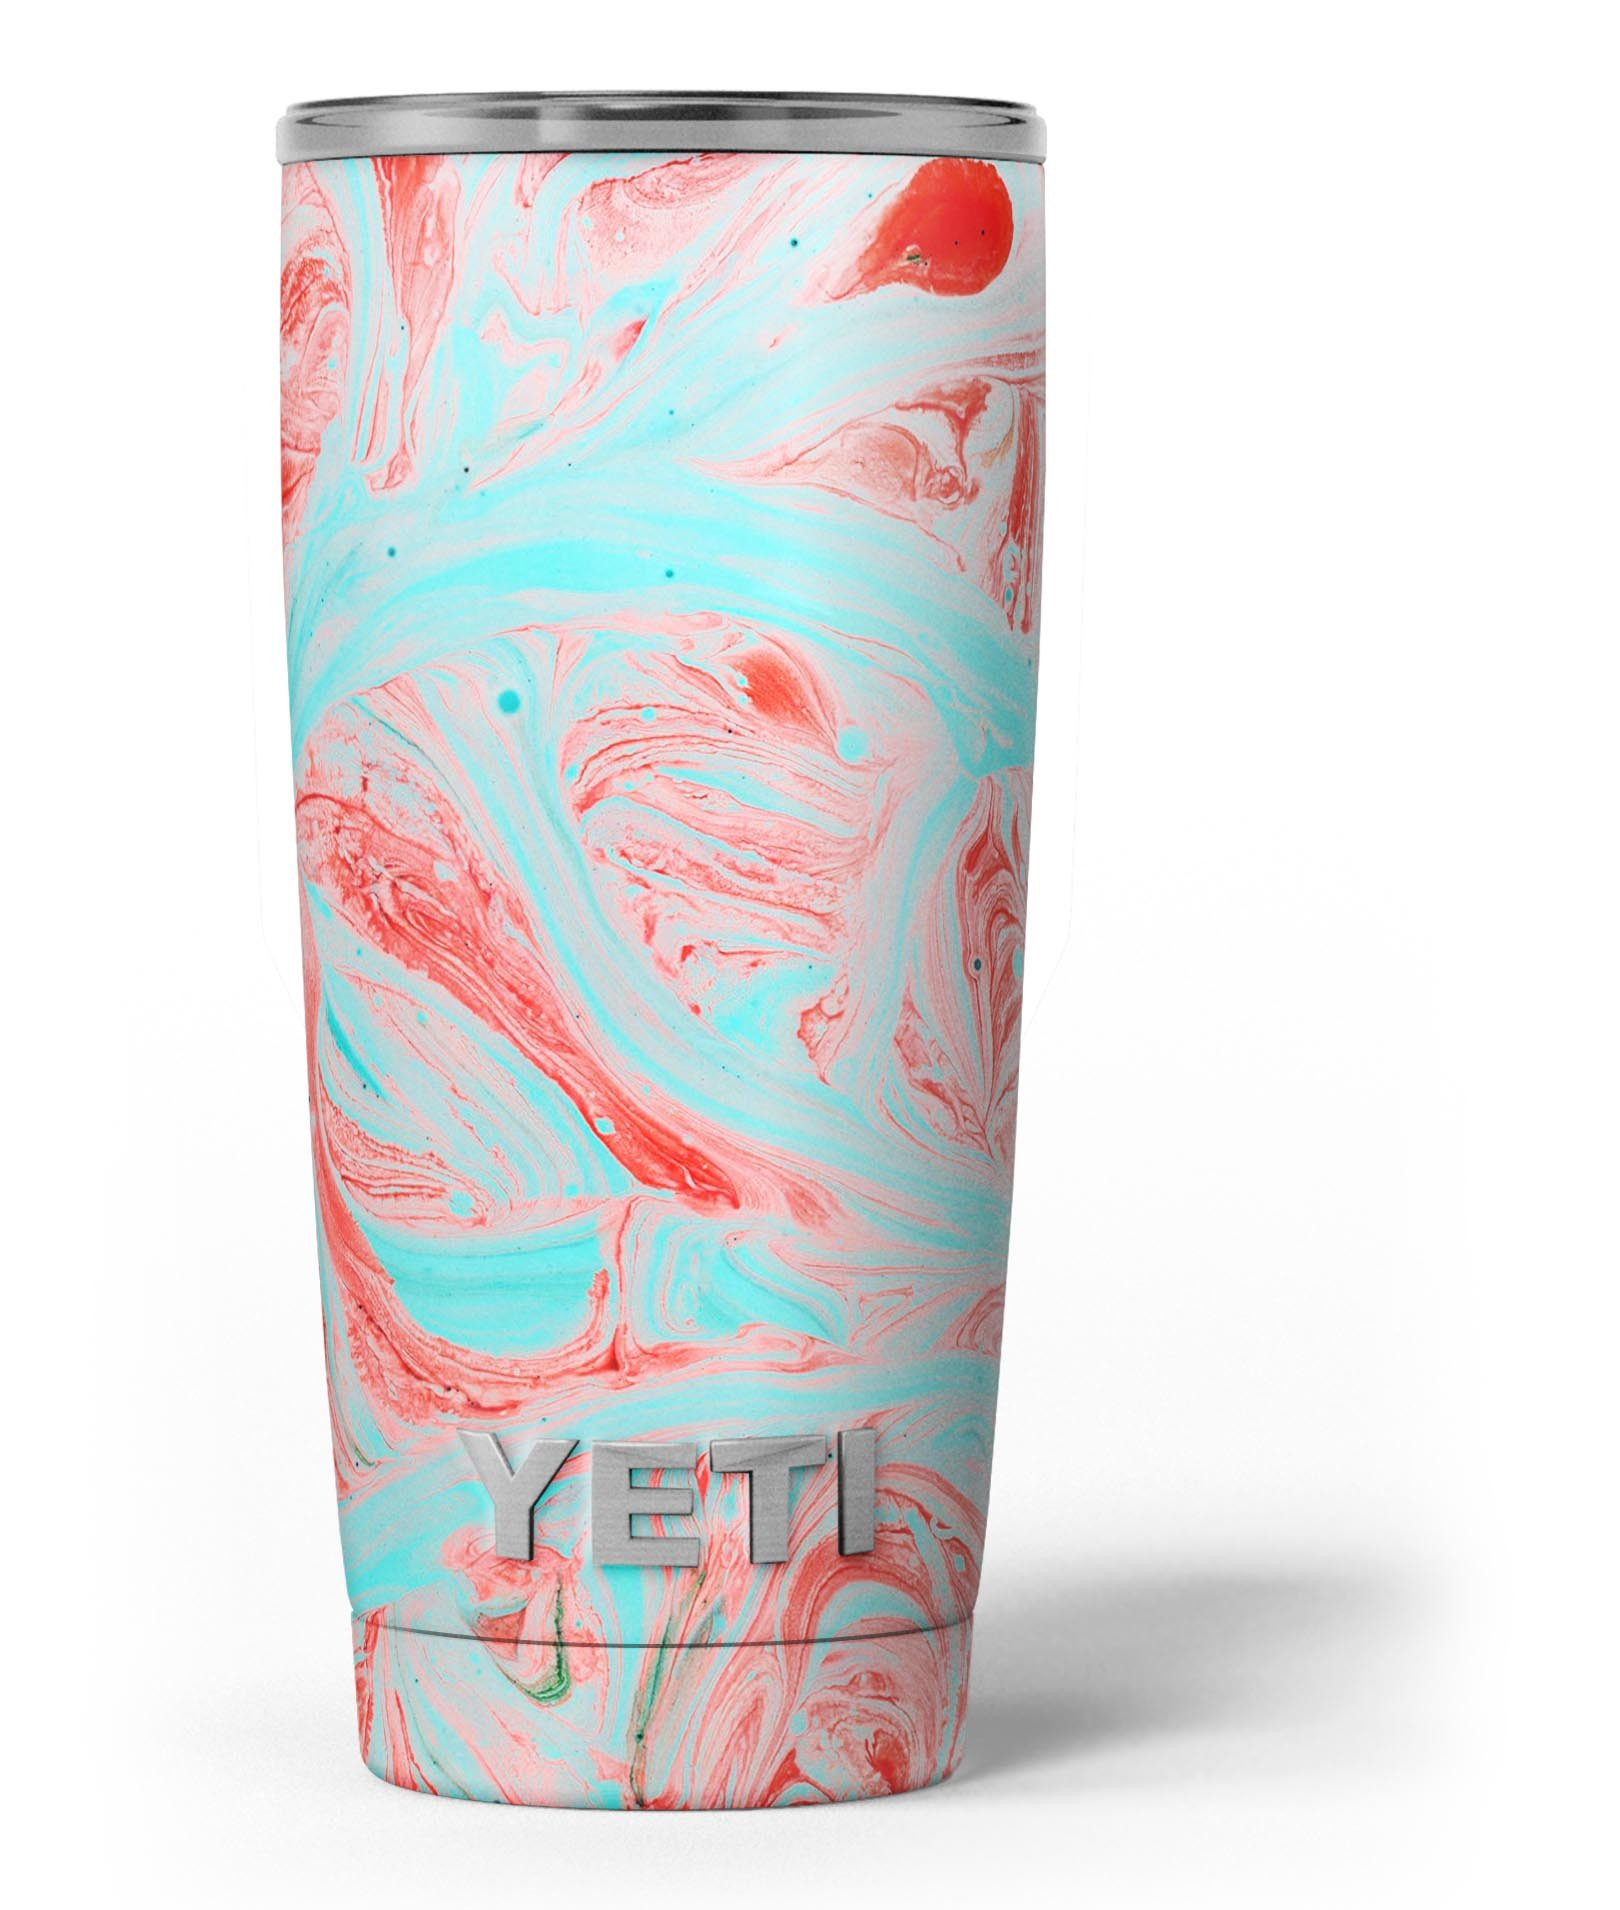 Image of Swirling Pink and Mint Acrylic Marble - Skin Decal Vinyl Wrap Kit compatible with the Yeti Rambler Cooler Tumbler Cups